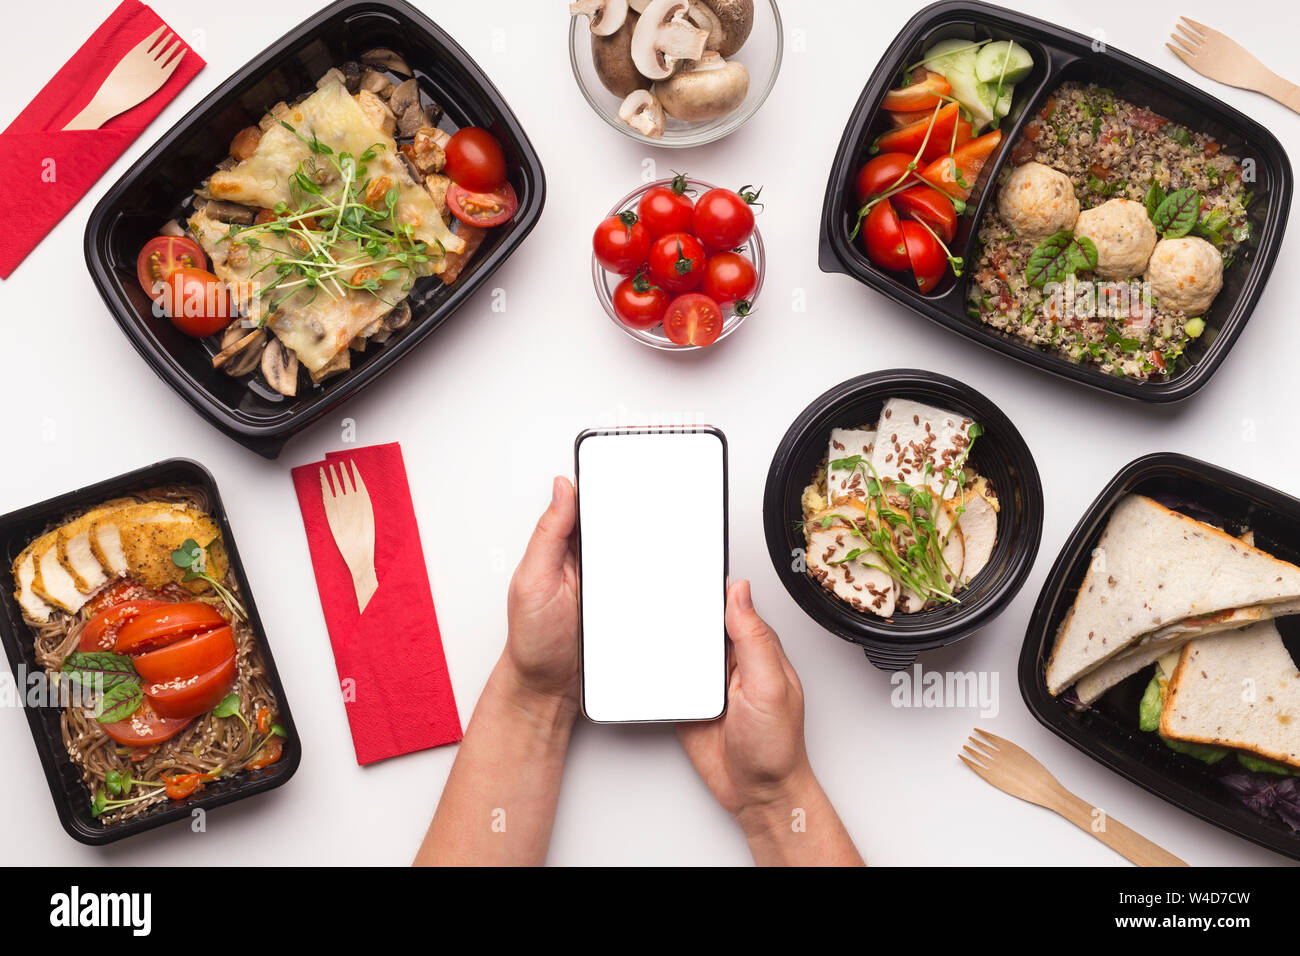 Healthy Restaurant Food Delivery In Your Cellphone Stock Photo Alamy